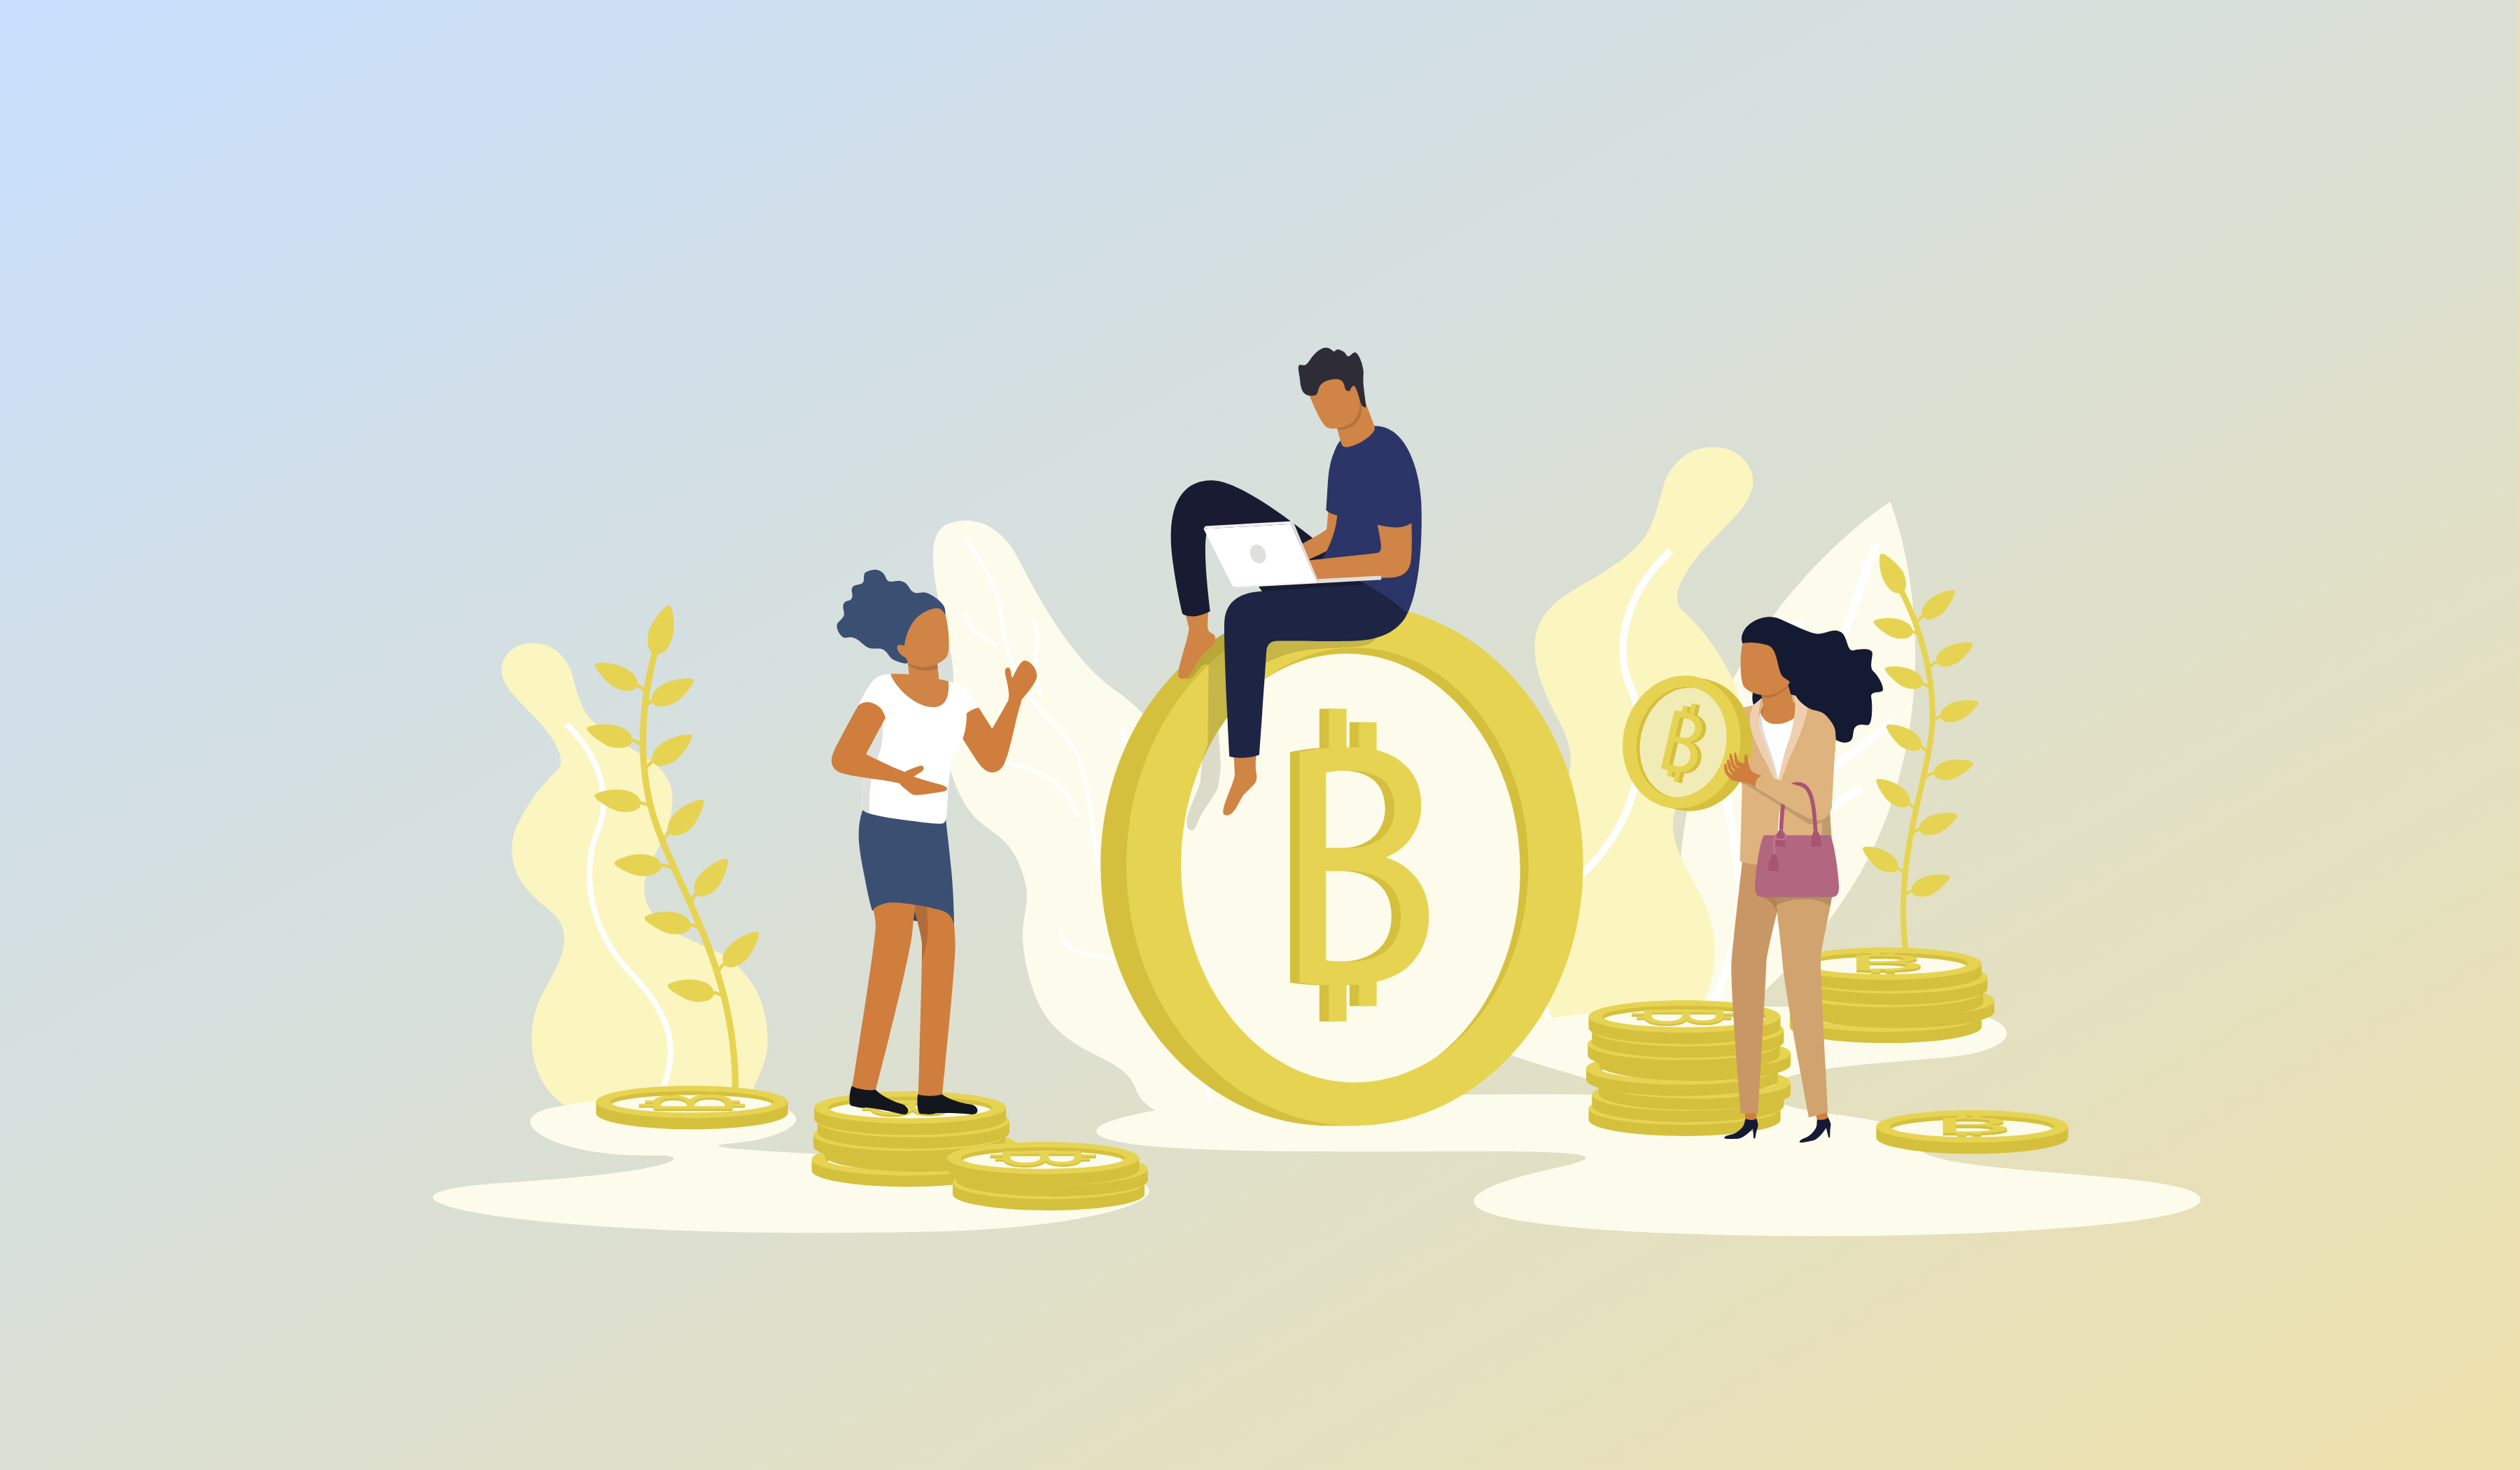 Cryptocurrency: Social Media Influence and Digital Marketing Pitfalls